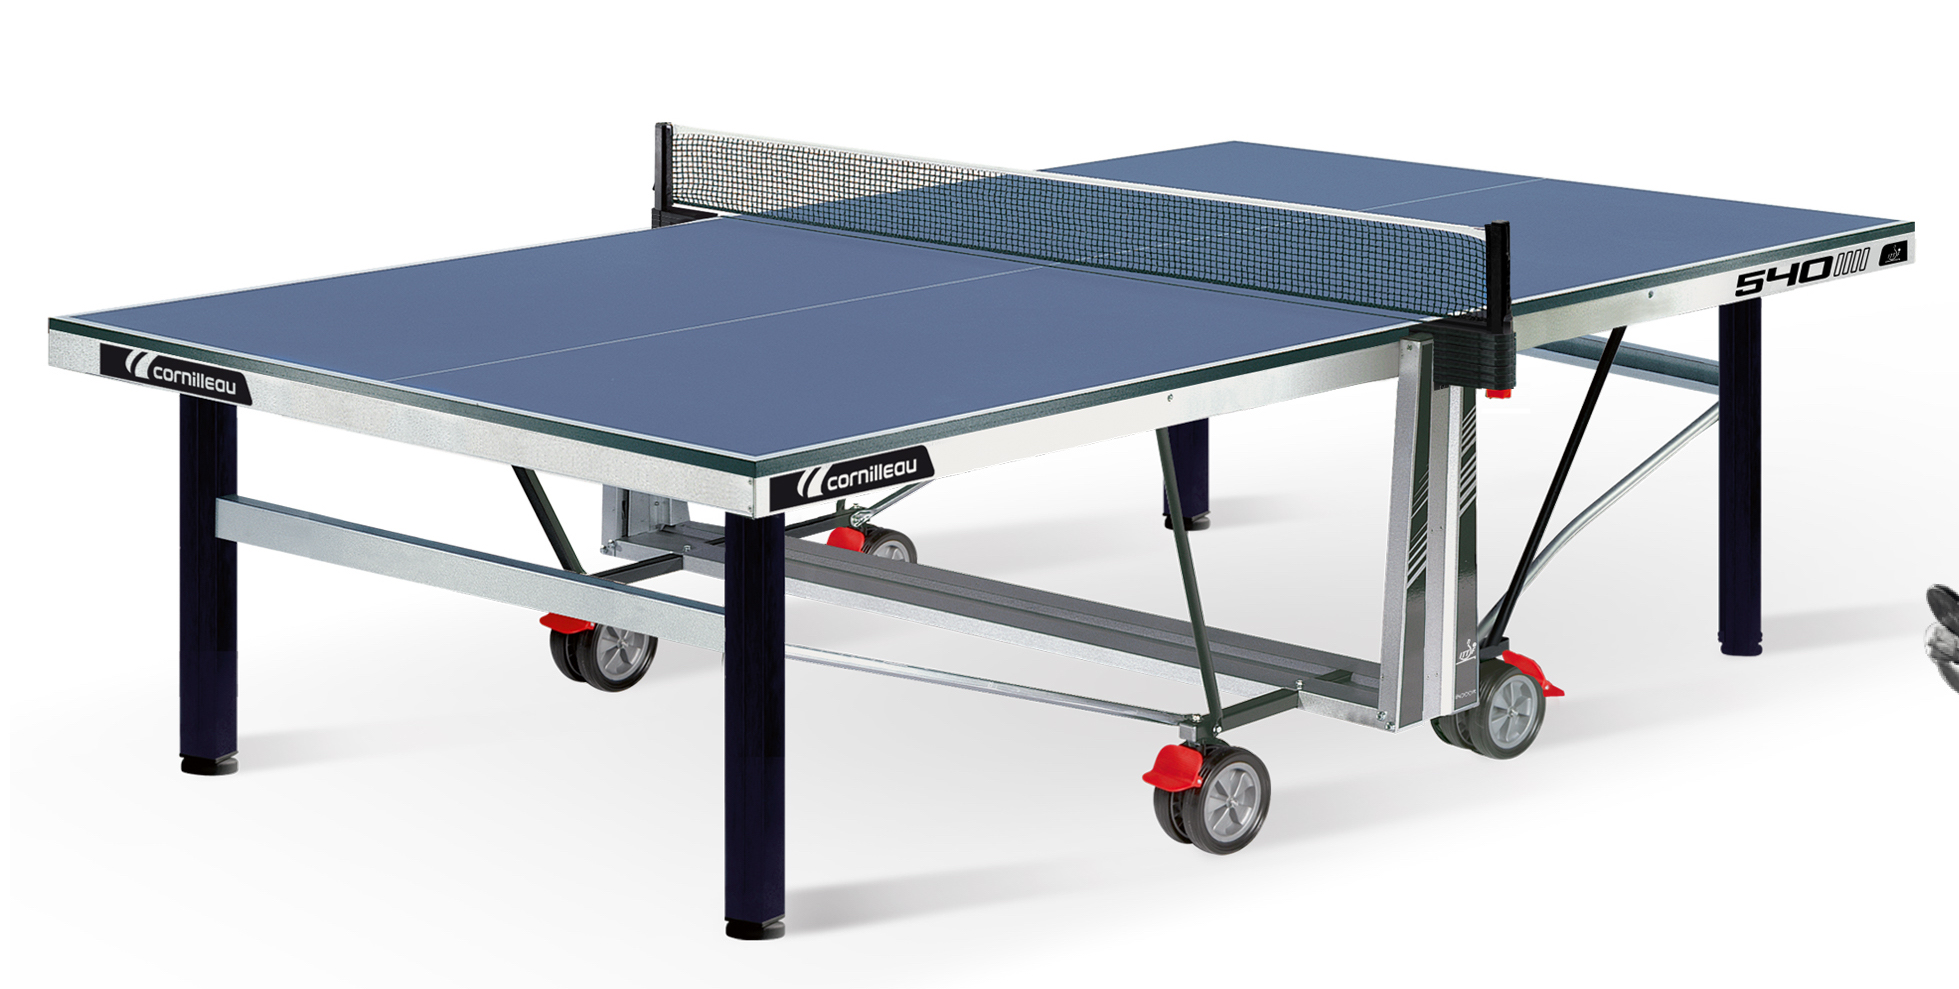 Cornilleau 540 indoor - Table ping pong prix ...